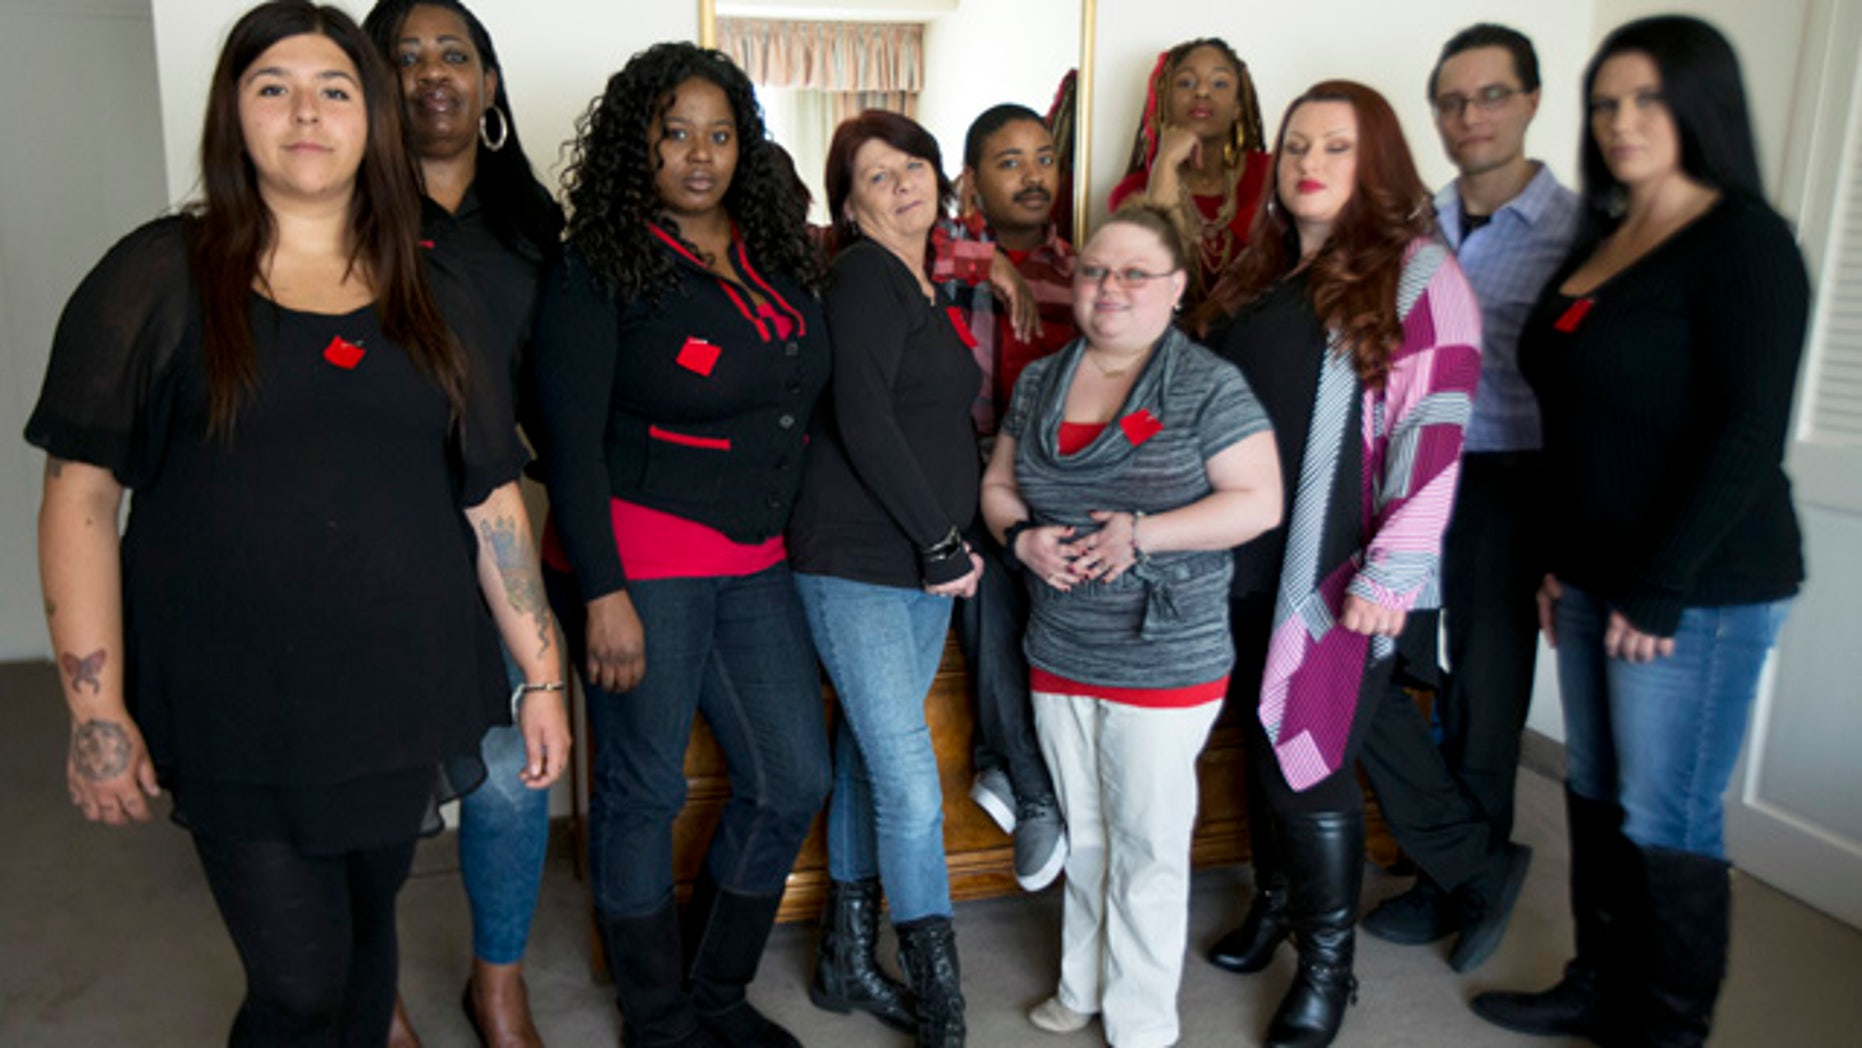 March 30, 2015: Makenzie Vasquez, from left, Pamala Hunt, Latonya Suggs, Ann Bowers, Nathan Hornes, Ashlee Schmidt, Natasha Hornes, Tasha Courtright, Michael Adorno and  Sarah Dieffenbacher, pose for a picture in Washington. Former and current college students calling themselves the Corinthian 100 say they are on a debt strike and refuse to pay back their student loans. (AP Photo/Manuel Balce Ceneta)